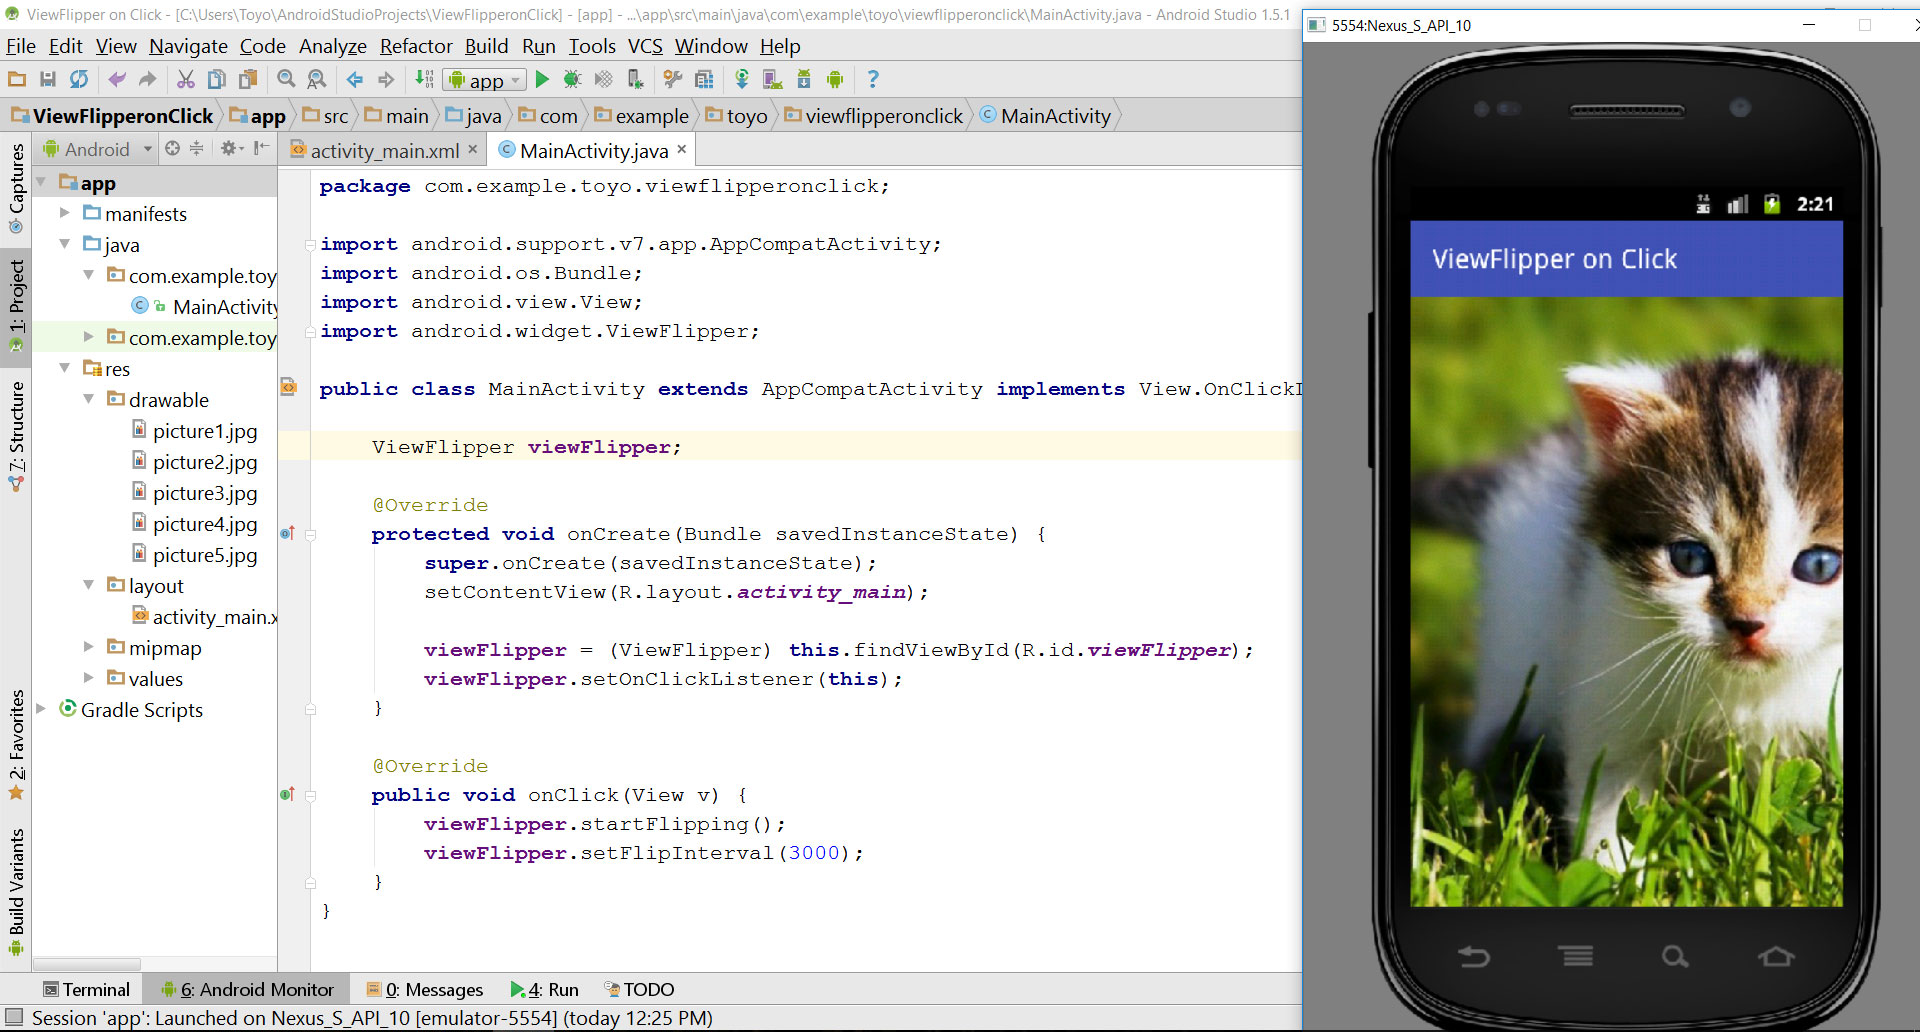 tutorial viewflipper on click in android studio